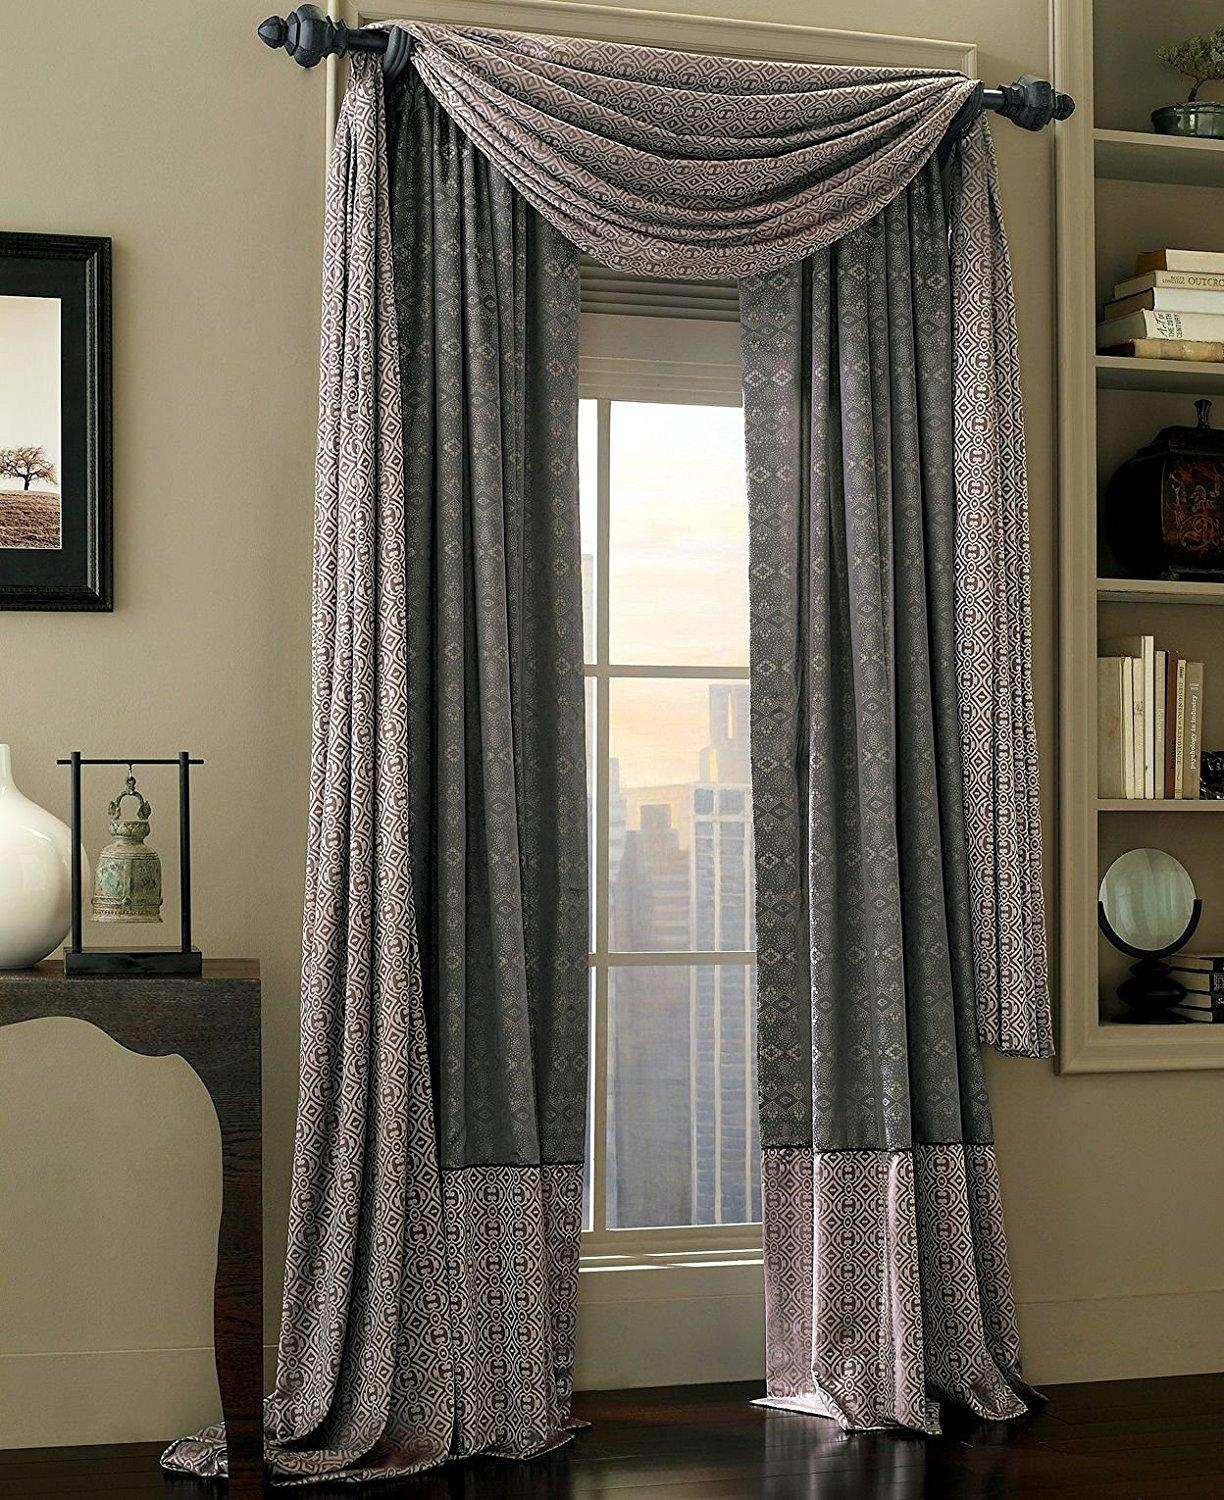 Decor: Gray Macys Curtains With Wall Art And Wall Shelves Plus For Macys Wall Art (View 7 of 20)